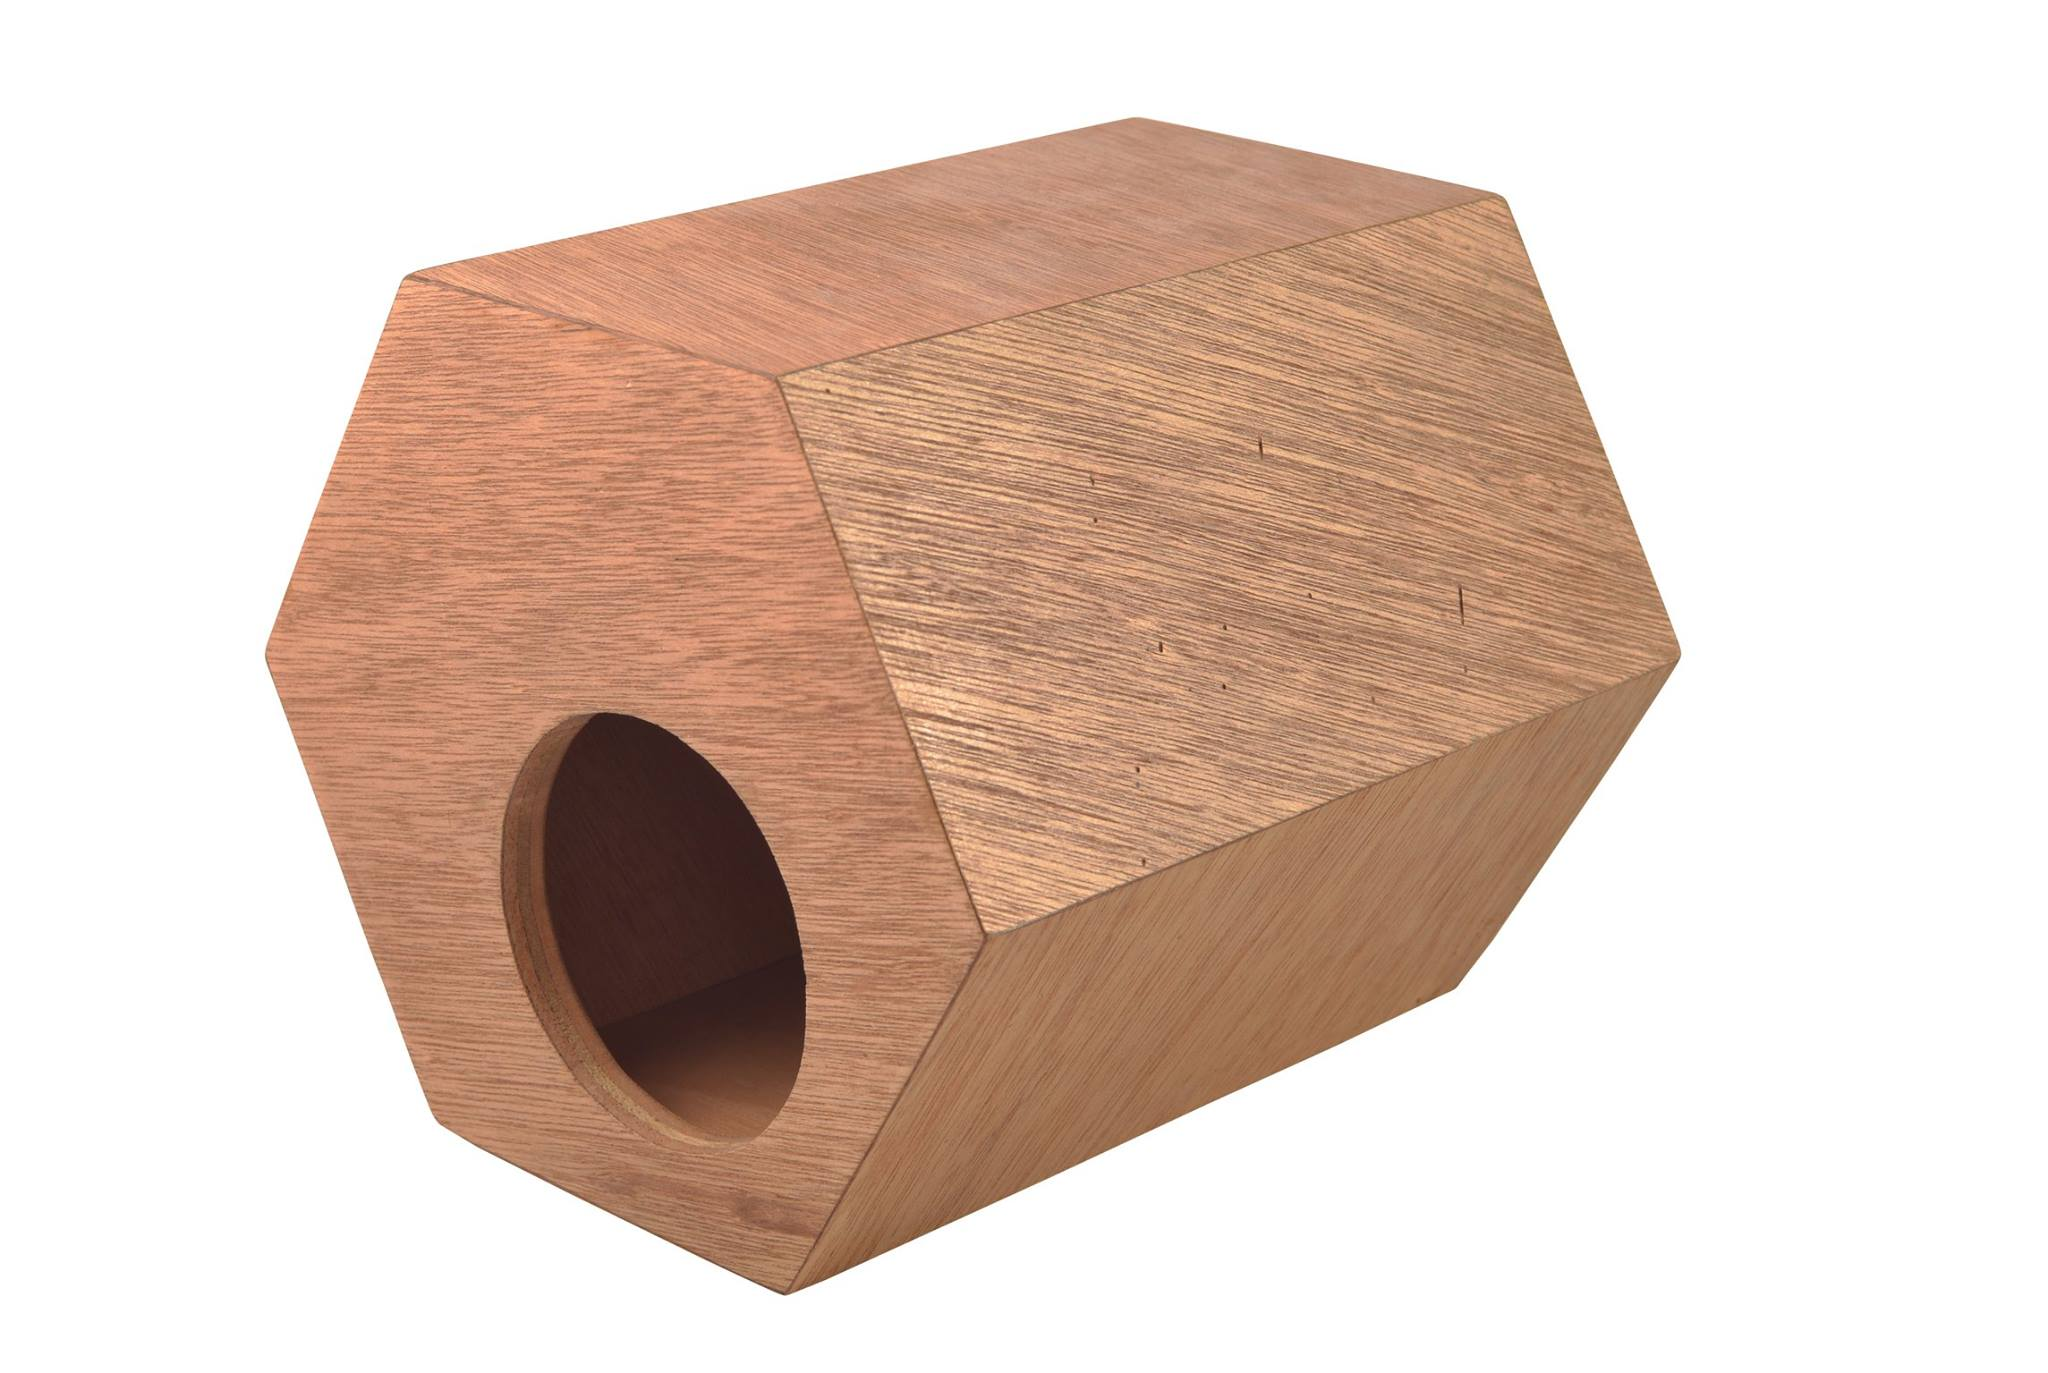 Wooden Hexagon Birdhouse